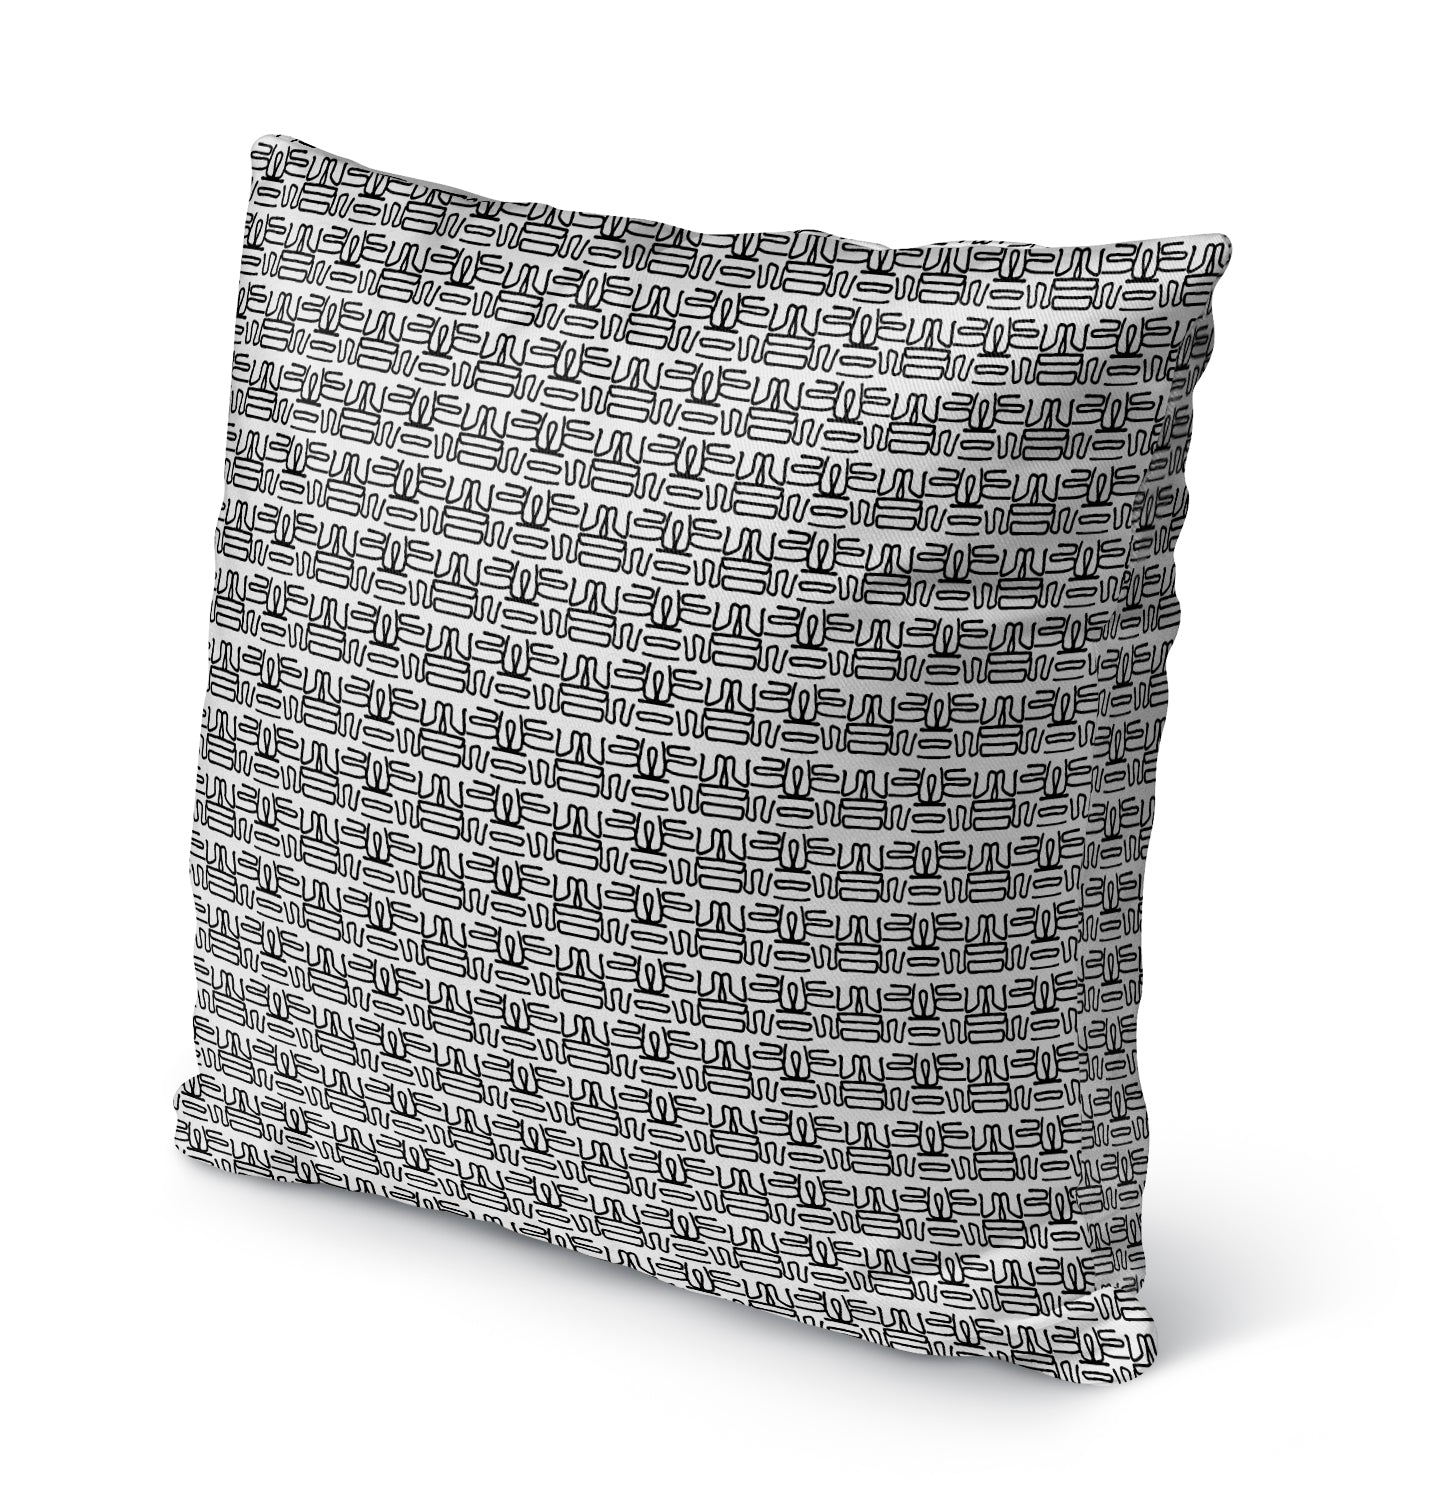 LYON Indoor|Outdoor Pillow By Michelle Parascandolo